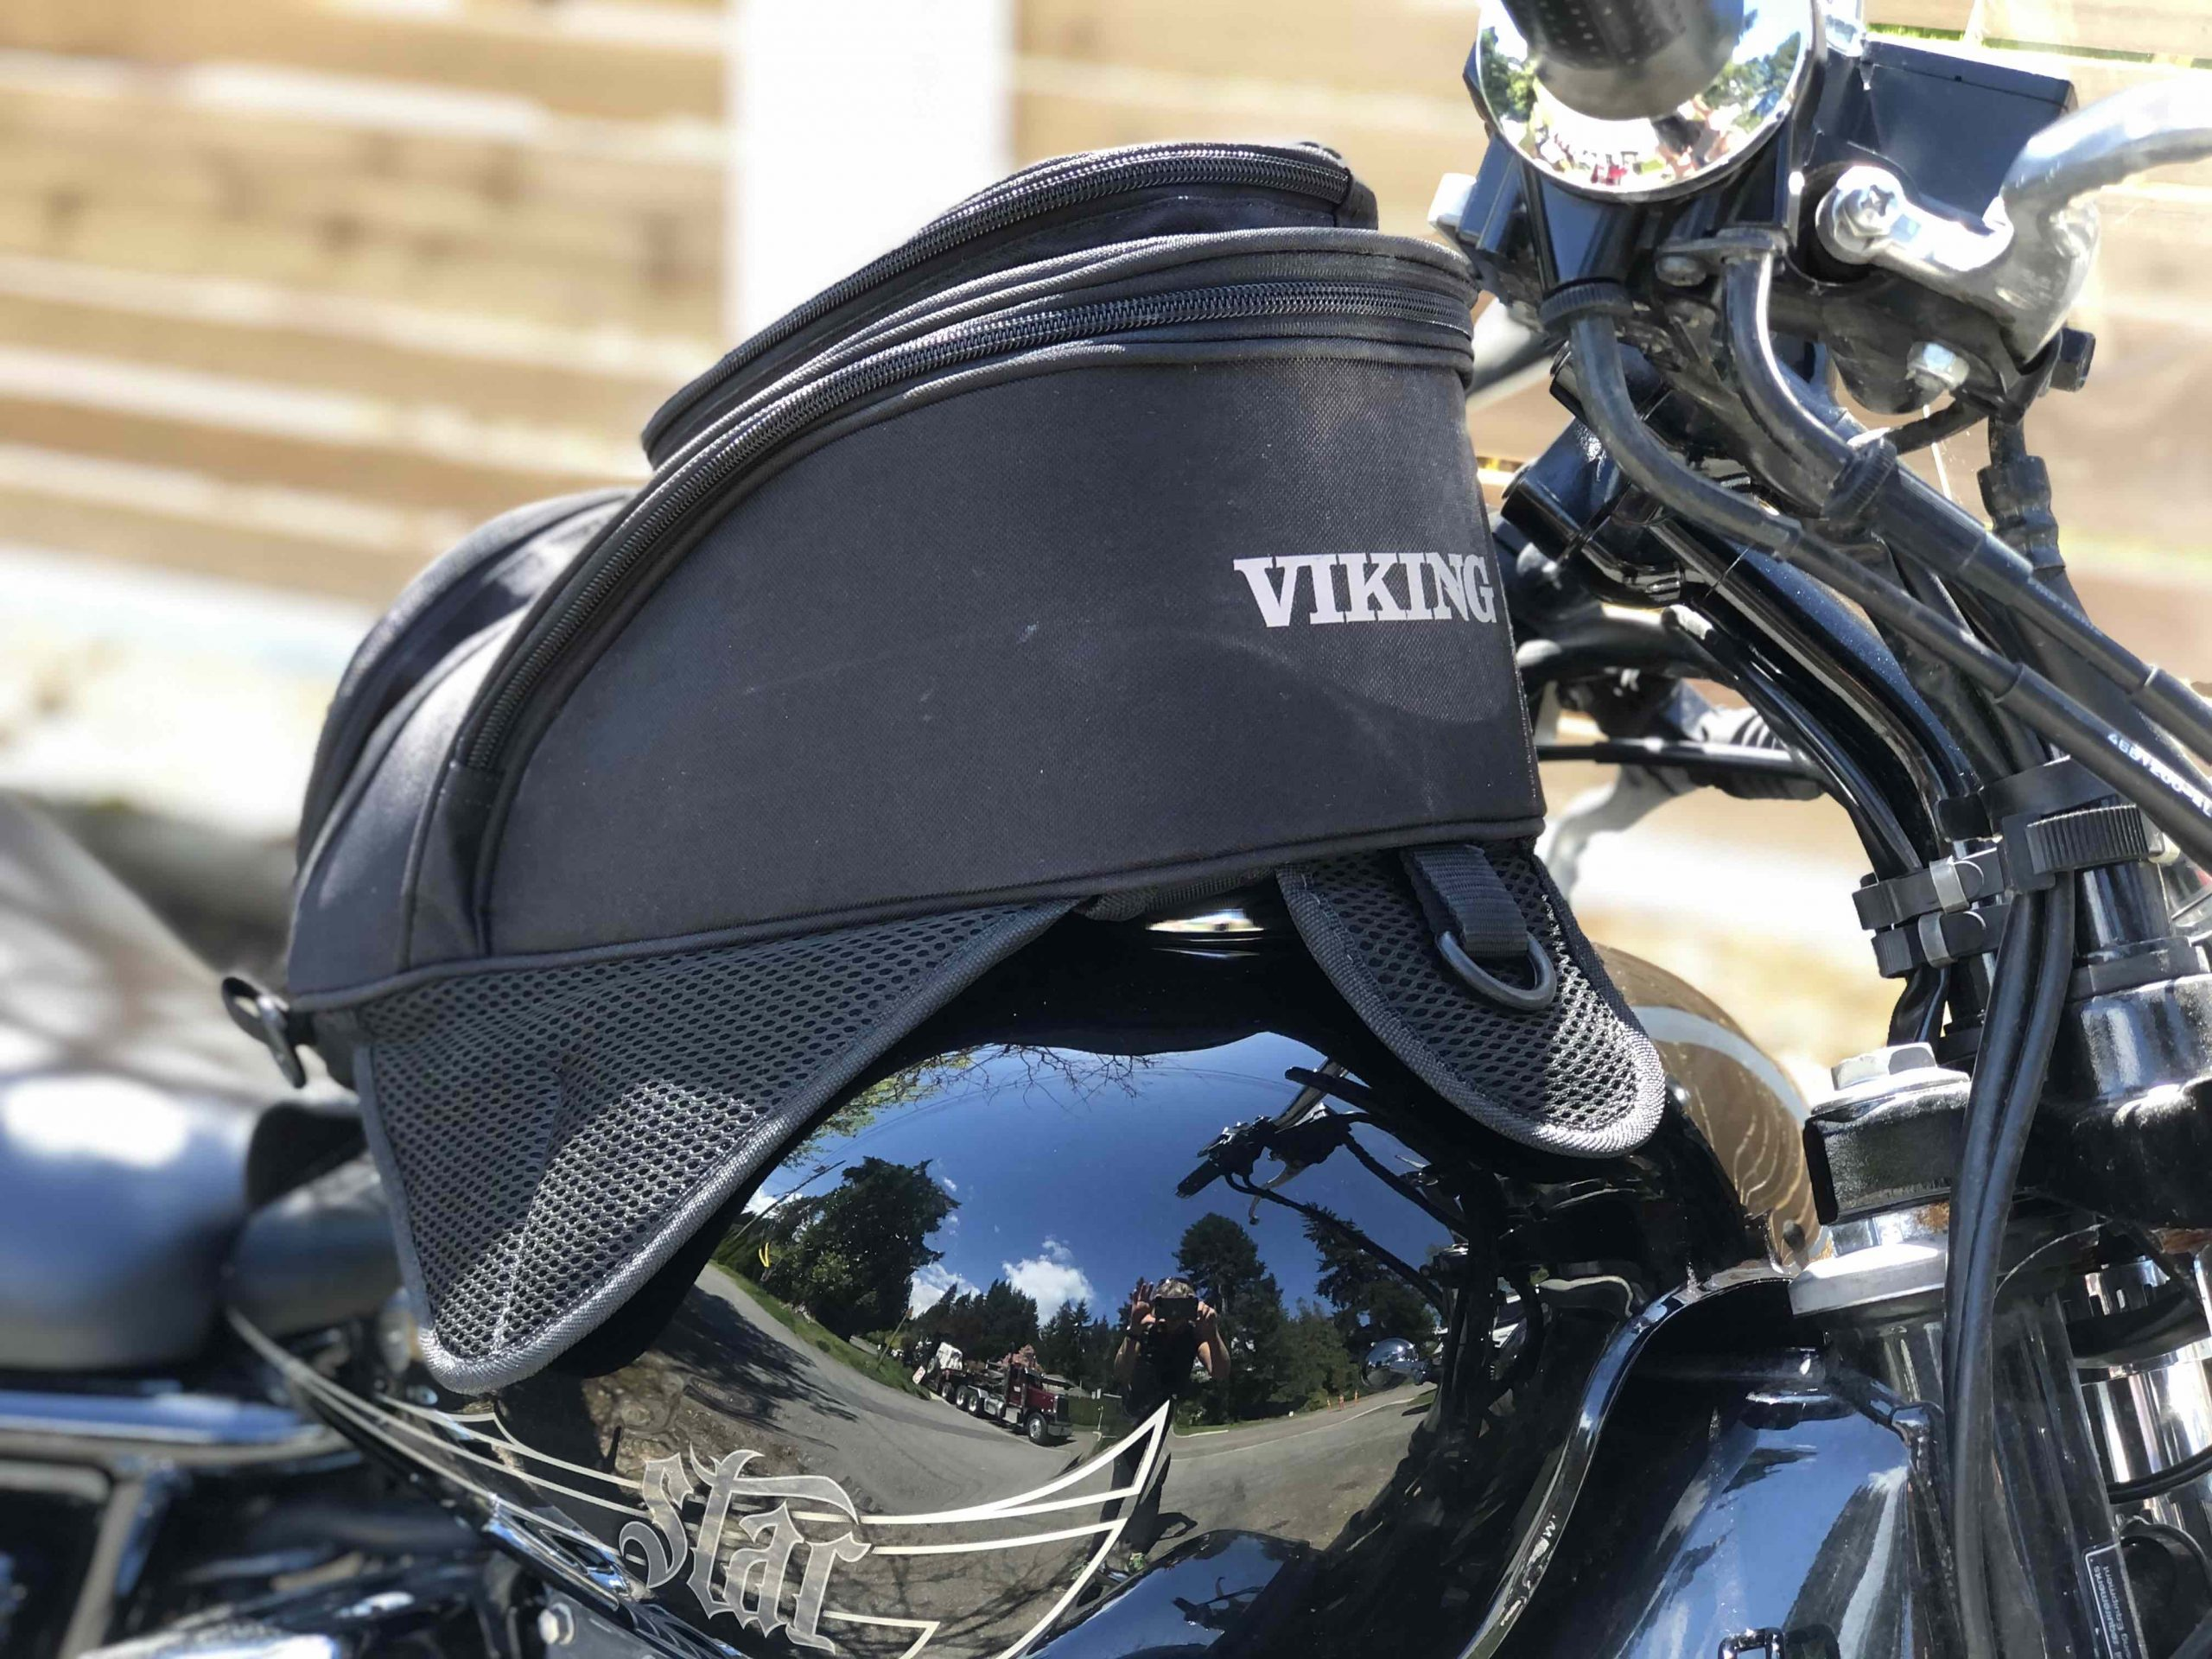 Viking Bags survival Series motorcycle tank bag review - Carry On Queen